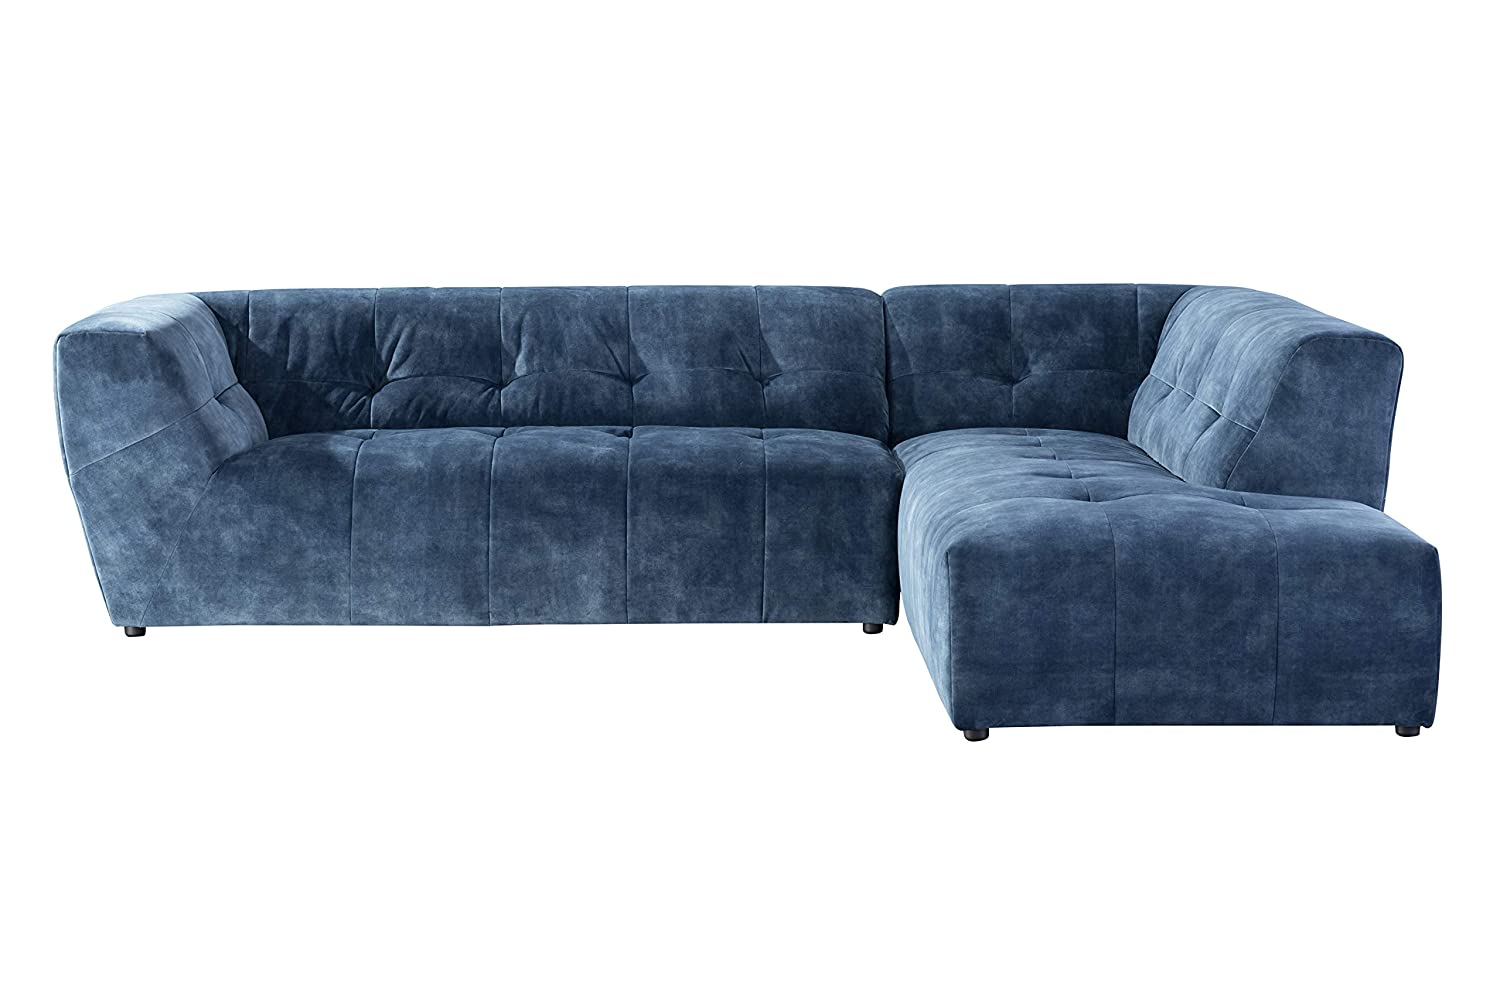 Acanva Collection Luxury Mid-Century Tufted Low Back Right Facing Sectional Sofa L-Shape Couch, Navy Blue